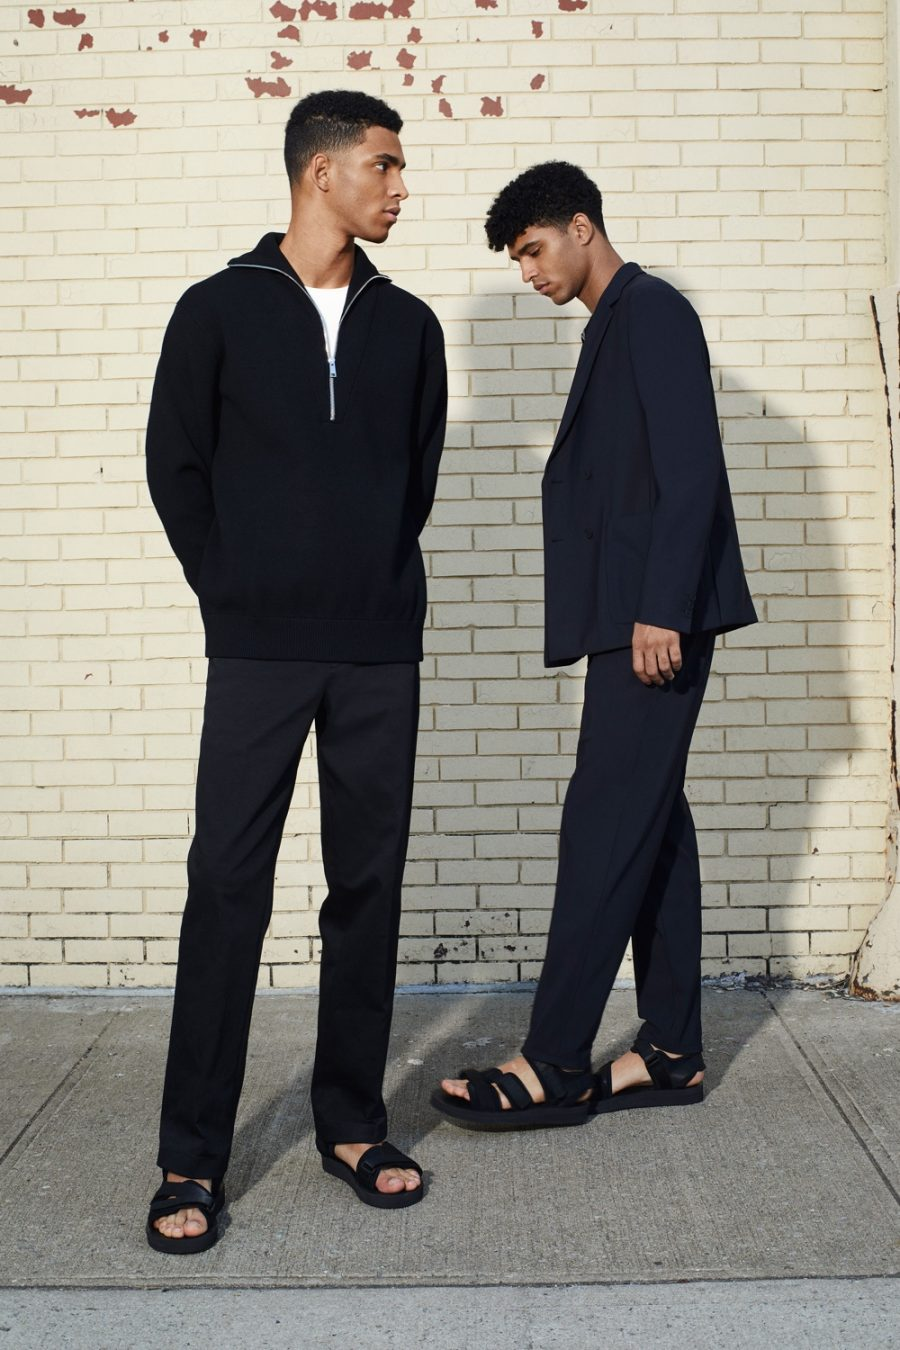 Brothers Jan Carlos and Hector Diaz wear tailored ensembles from Theory's spring-summer 2021 men's collection.